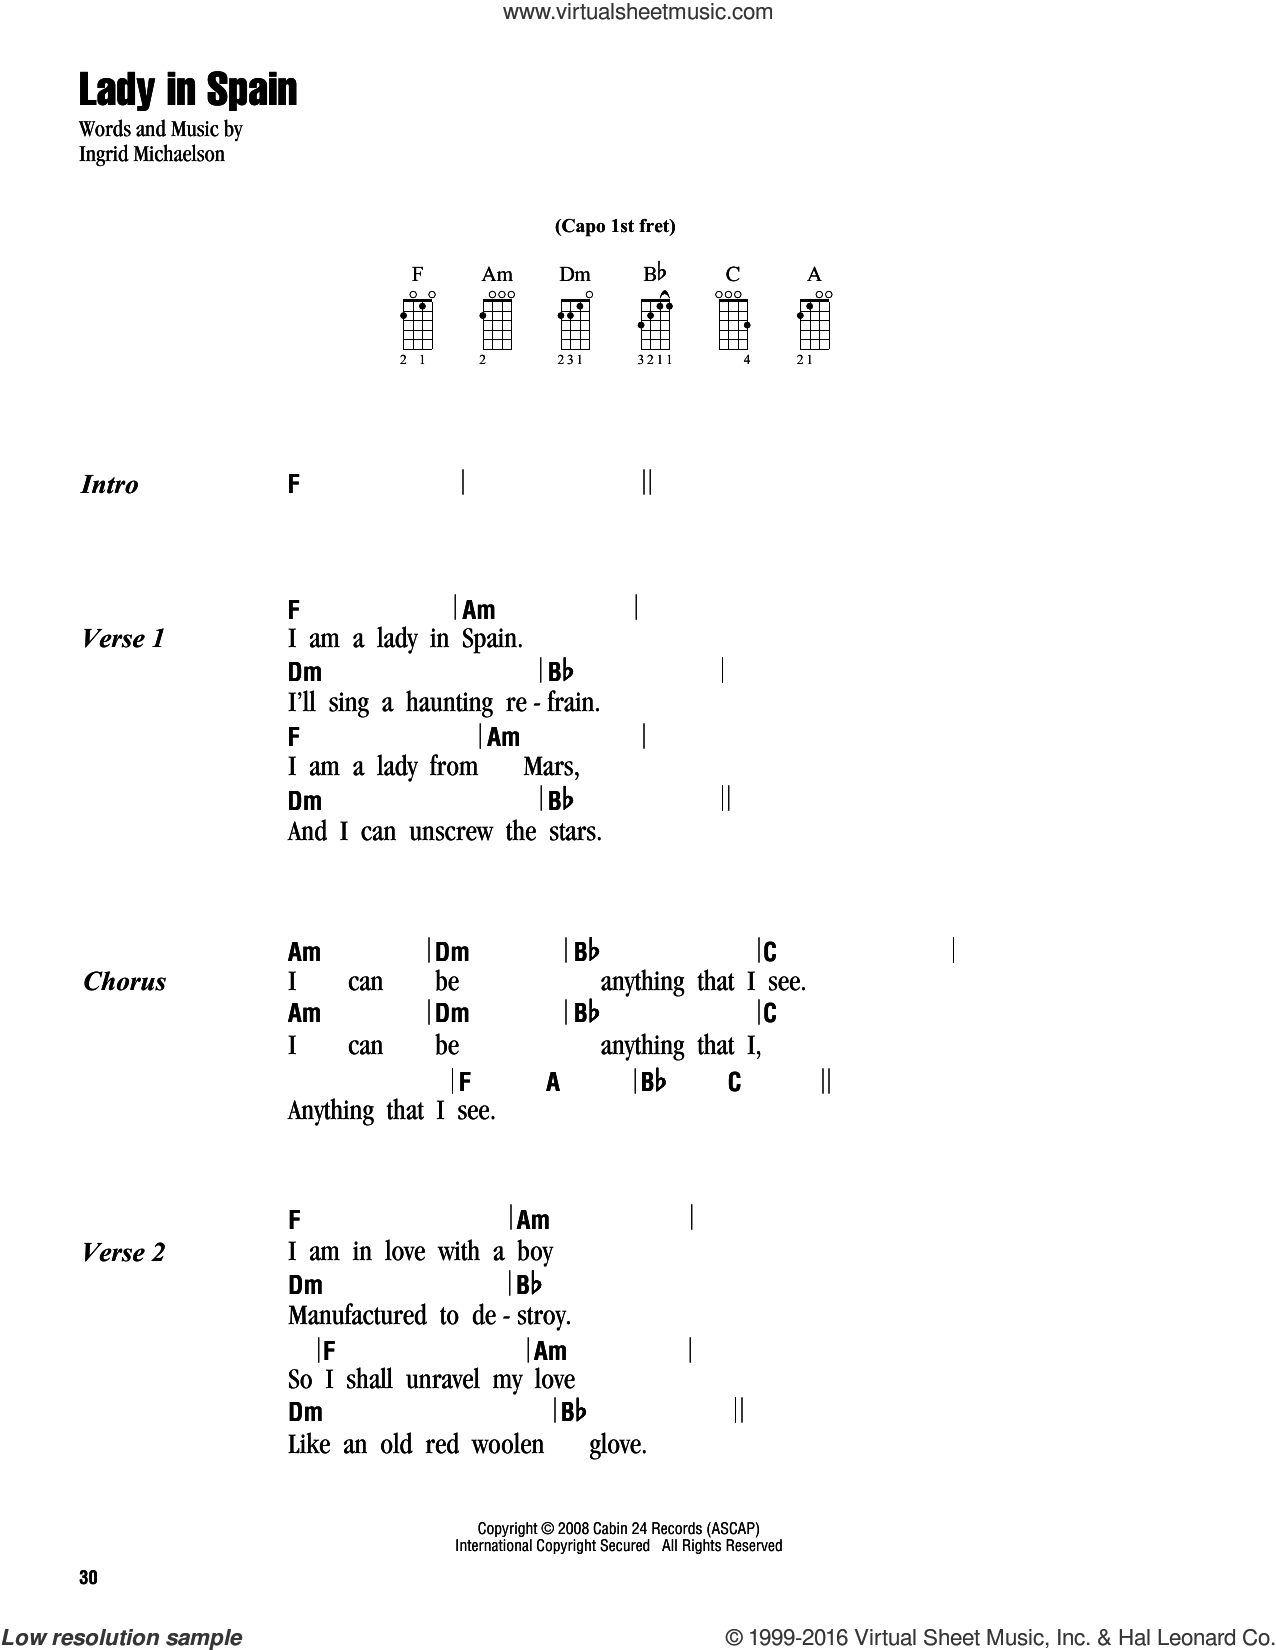 Lady In Spain sheet music for ukulele (chords) by Ingrid Michaelson, intermediate skill level